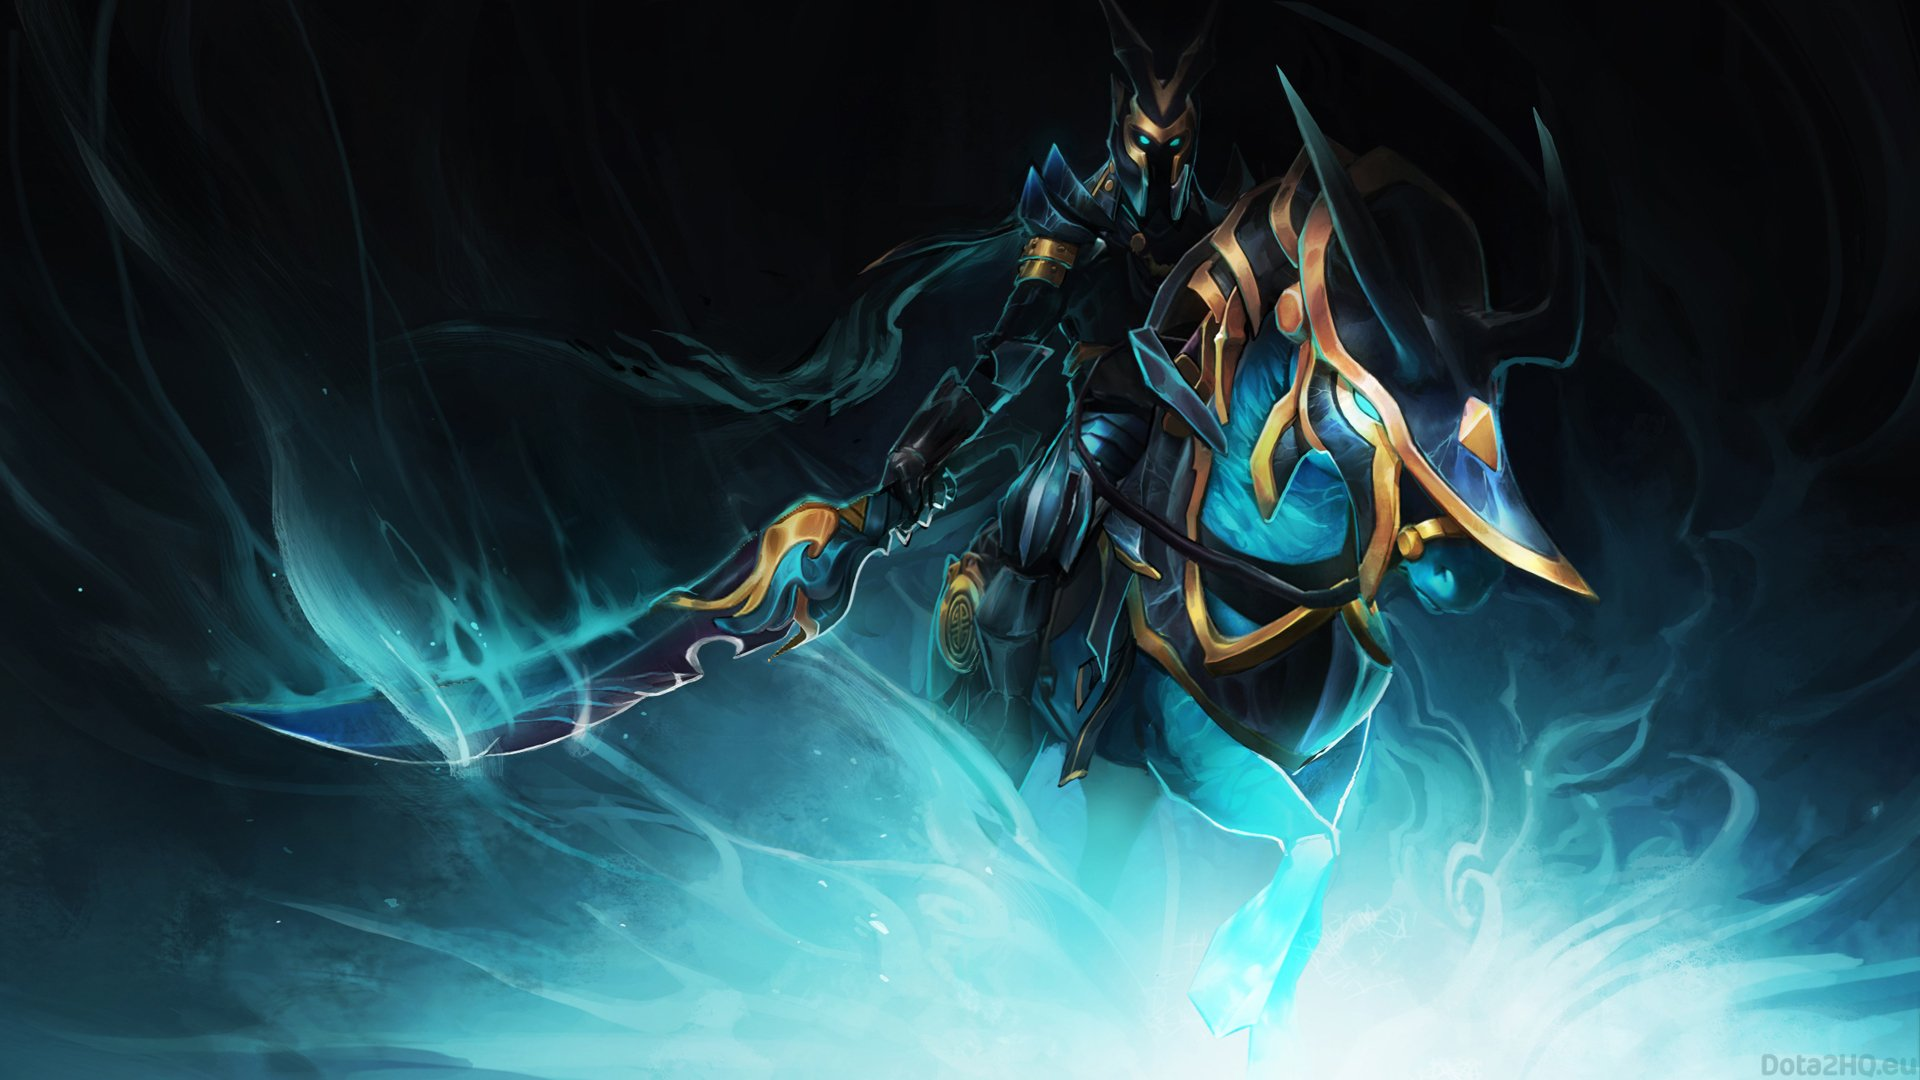 2 Abaddon (DotA 2) HD Wallpapers | Background Images - Wallpaper Abyss